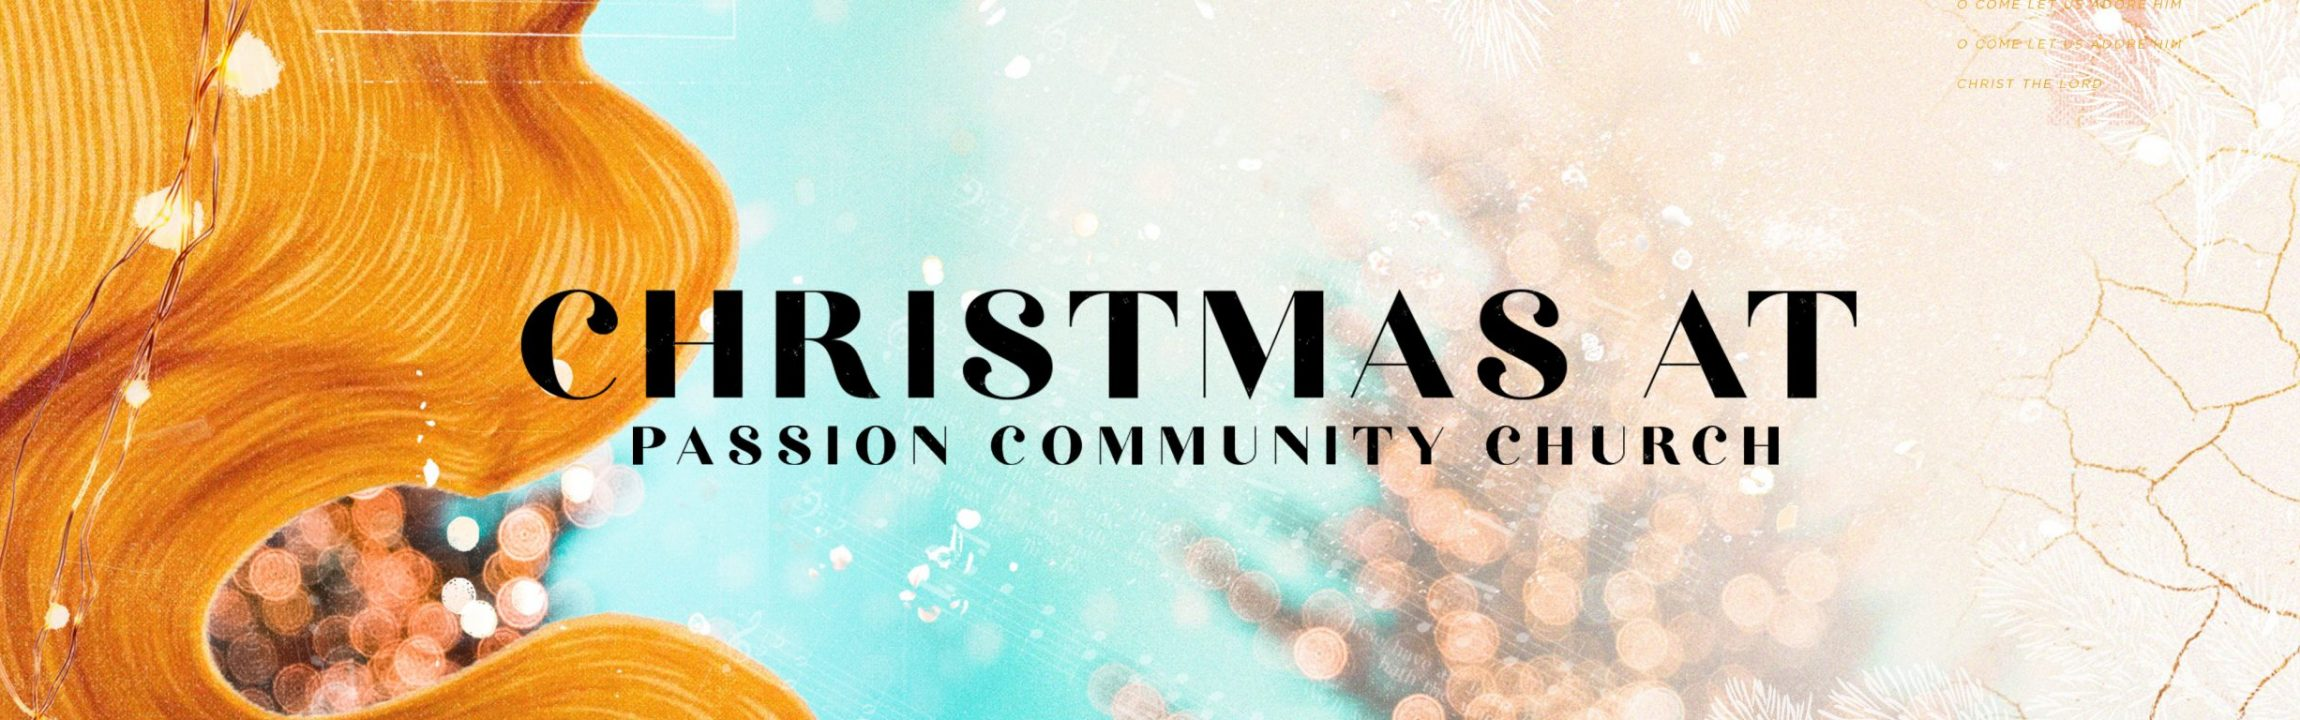 Christmas at PCC feature